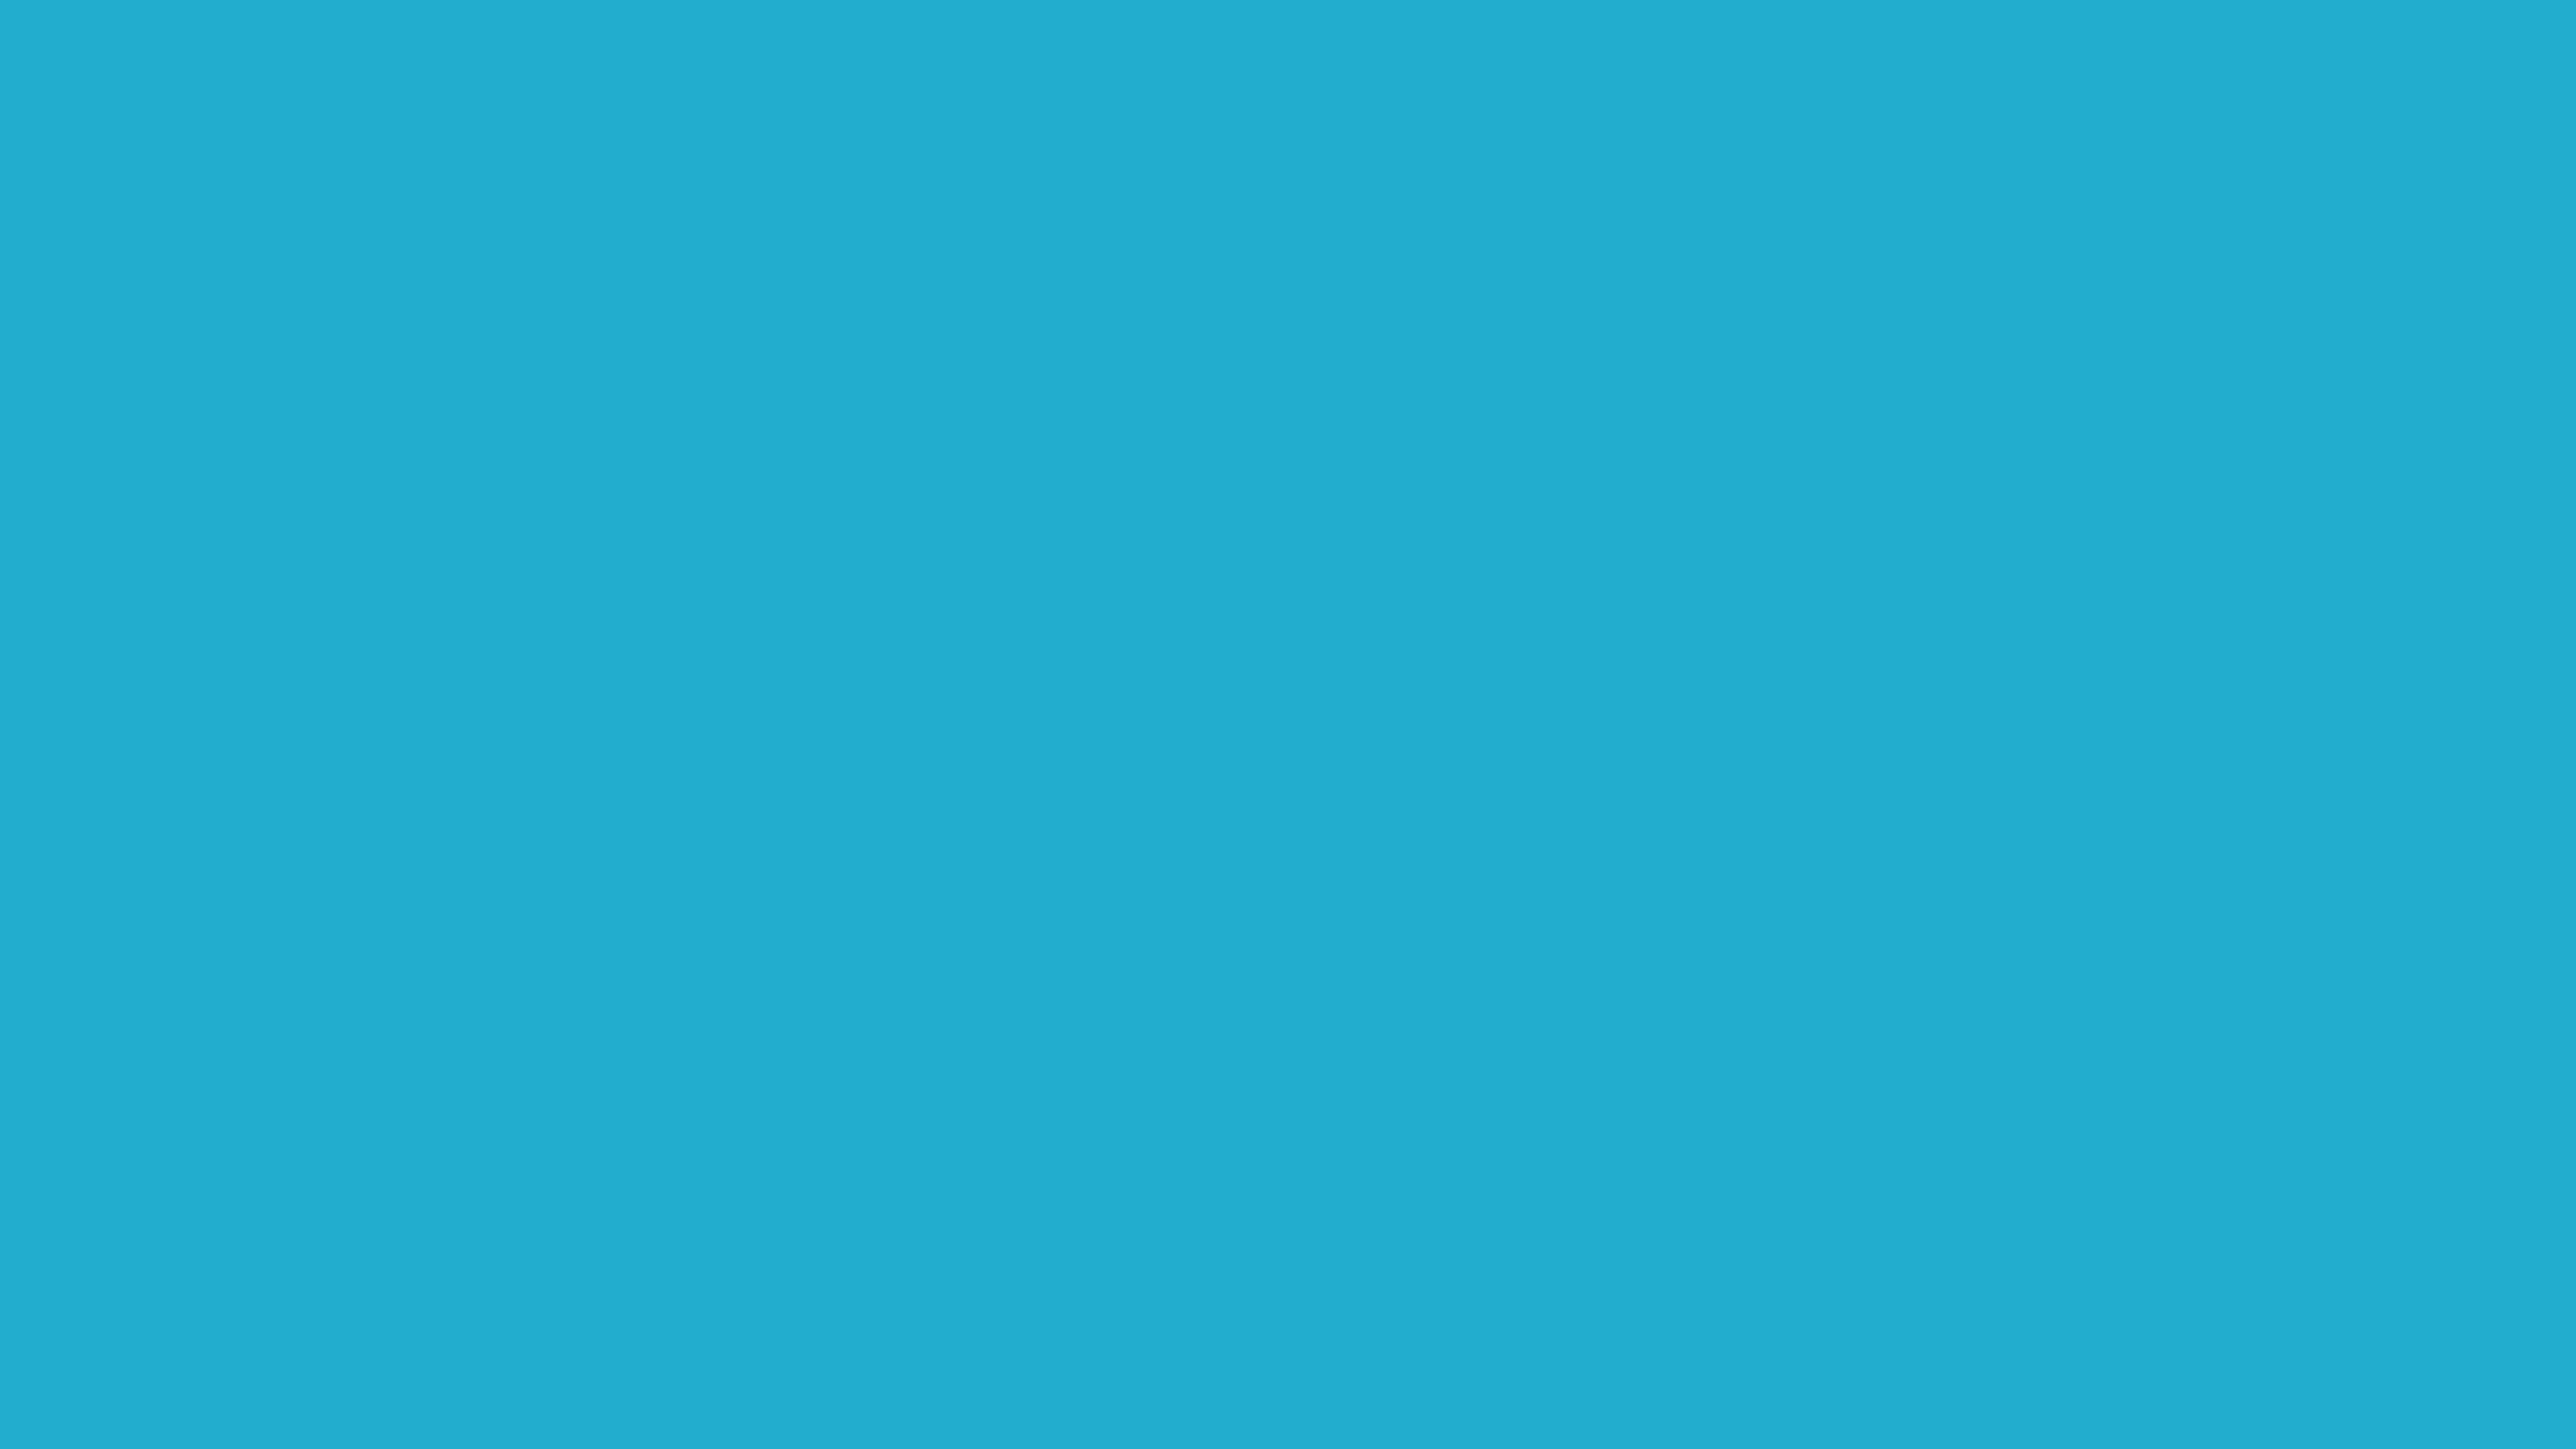 7680x4320 Ball Blue Solid Color Background